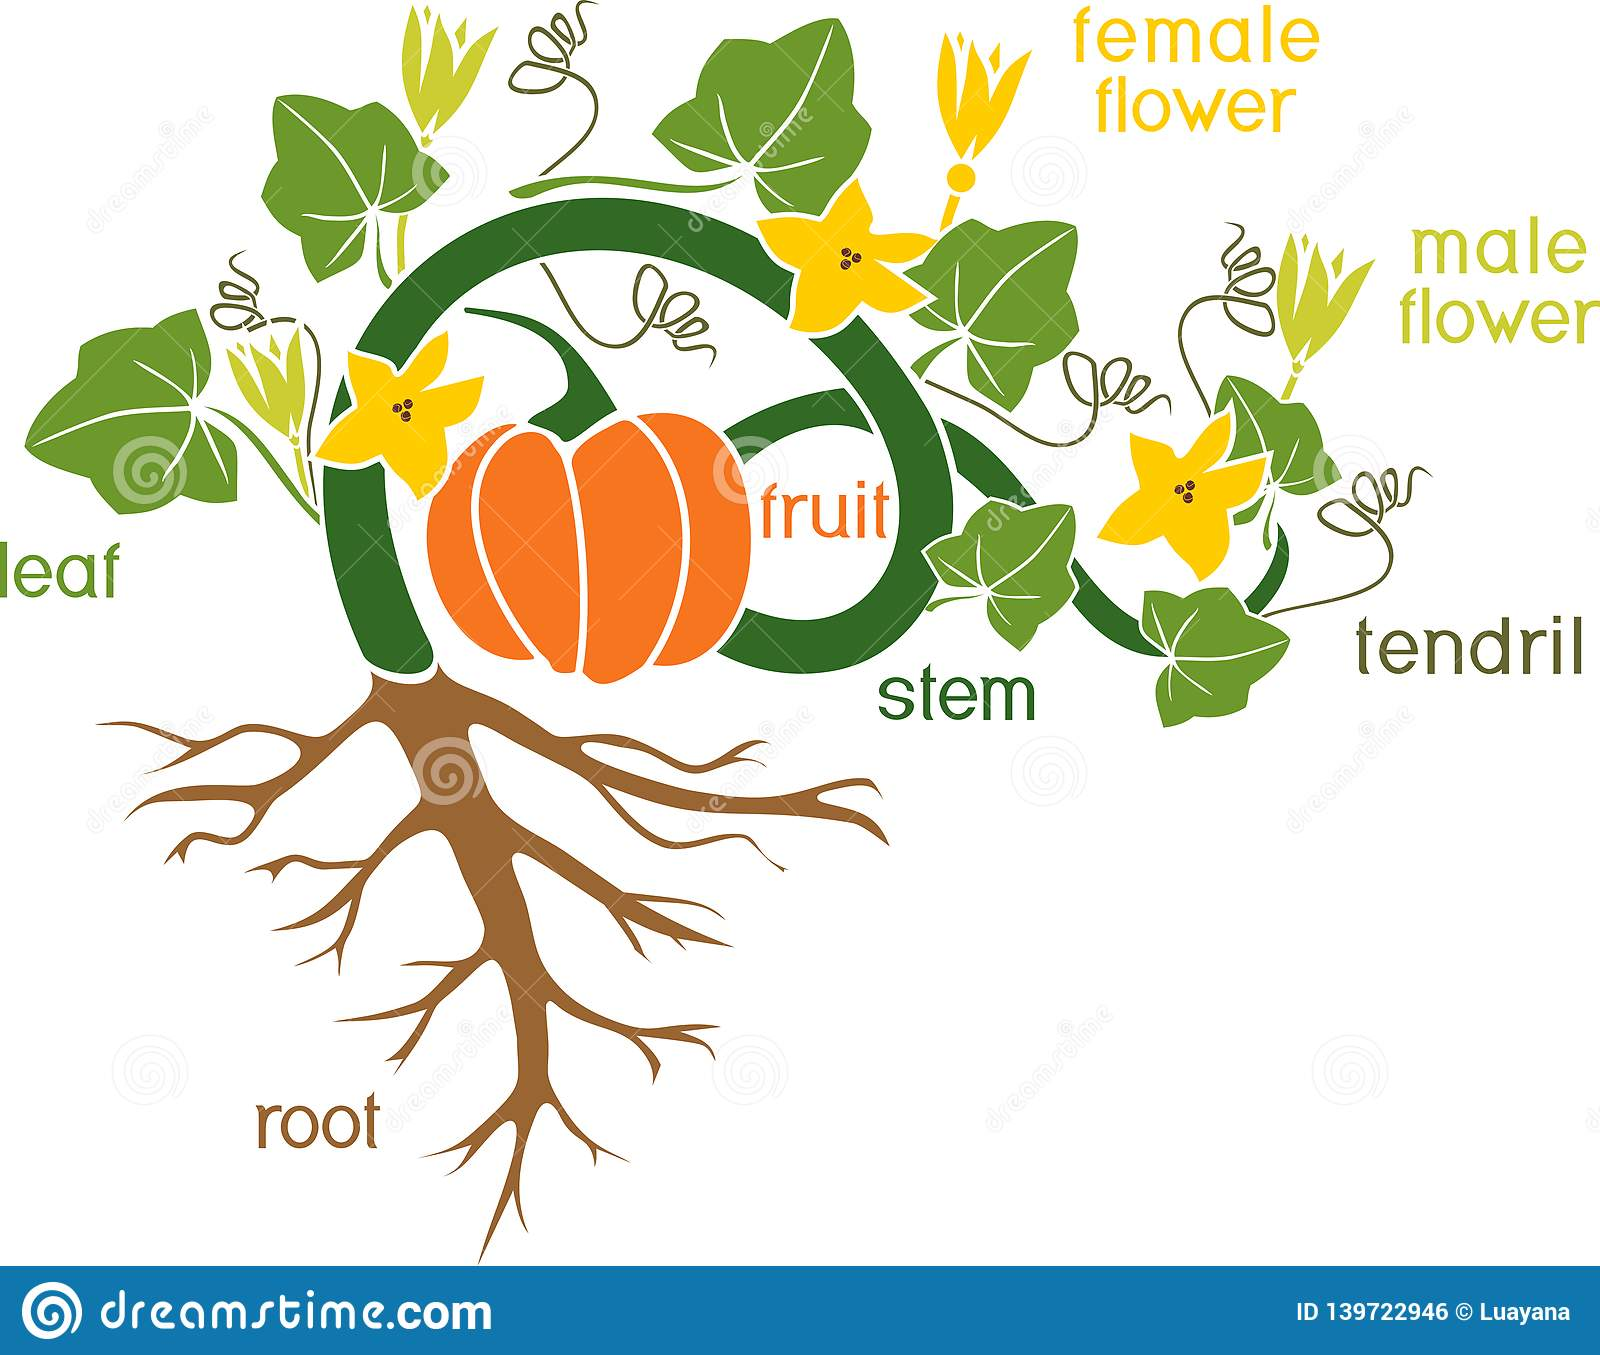 Parts Of Plant Morphology Of Pumpkin Plant With Fruit Green Leaves Root System And Titles Stock Vector Illustration Of Biology Agricultural 139722946